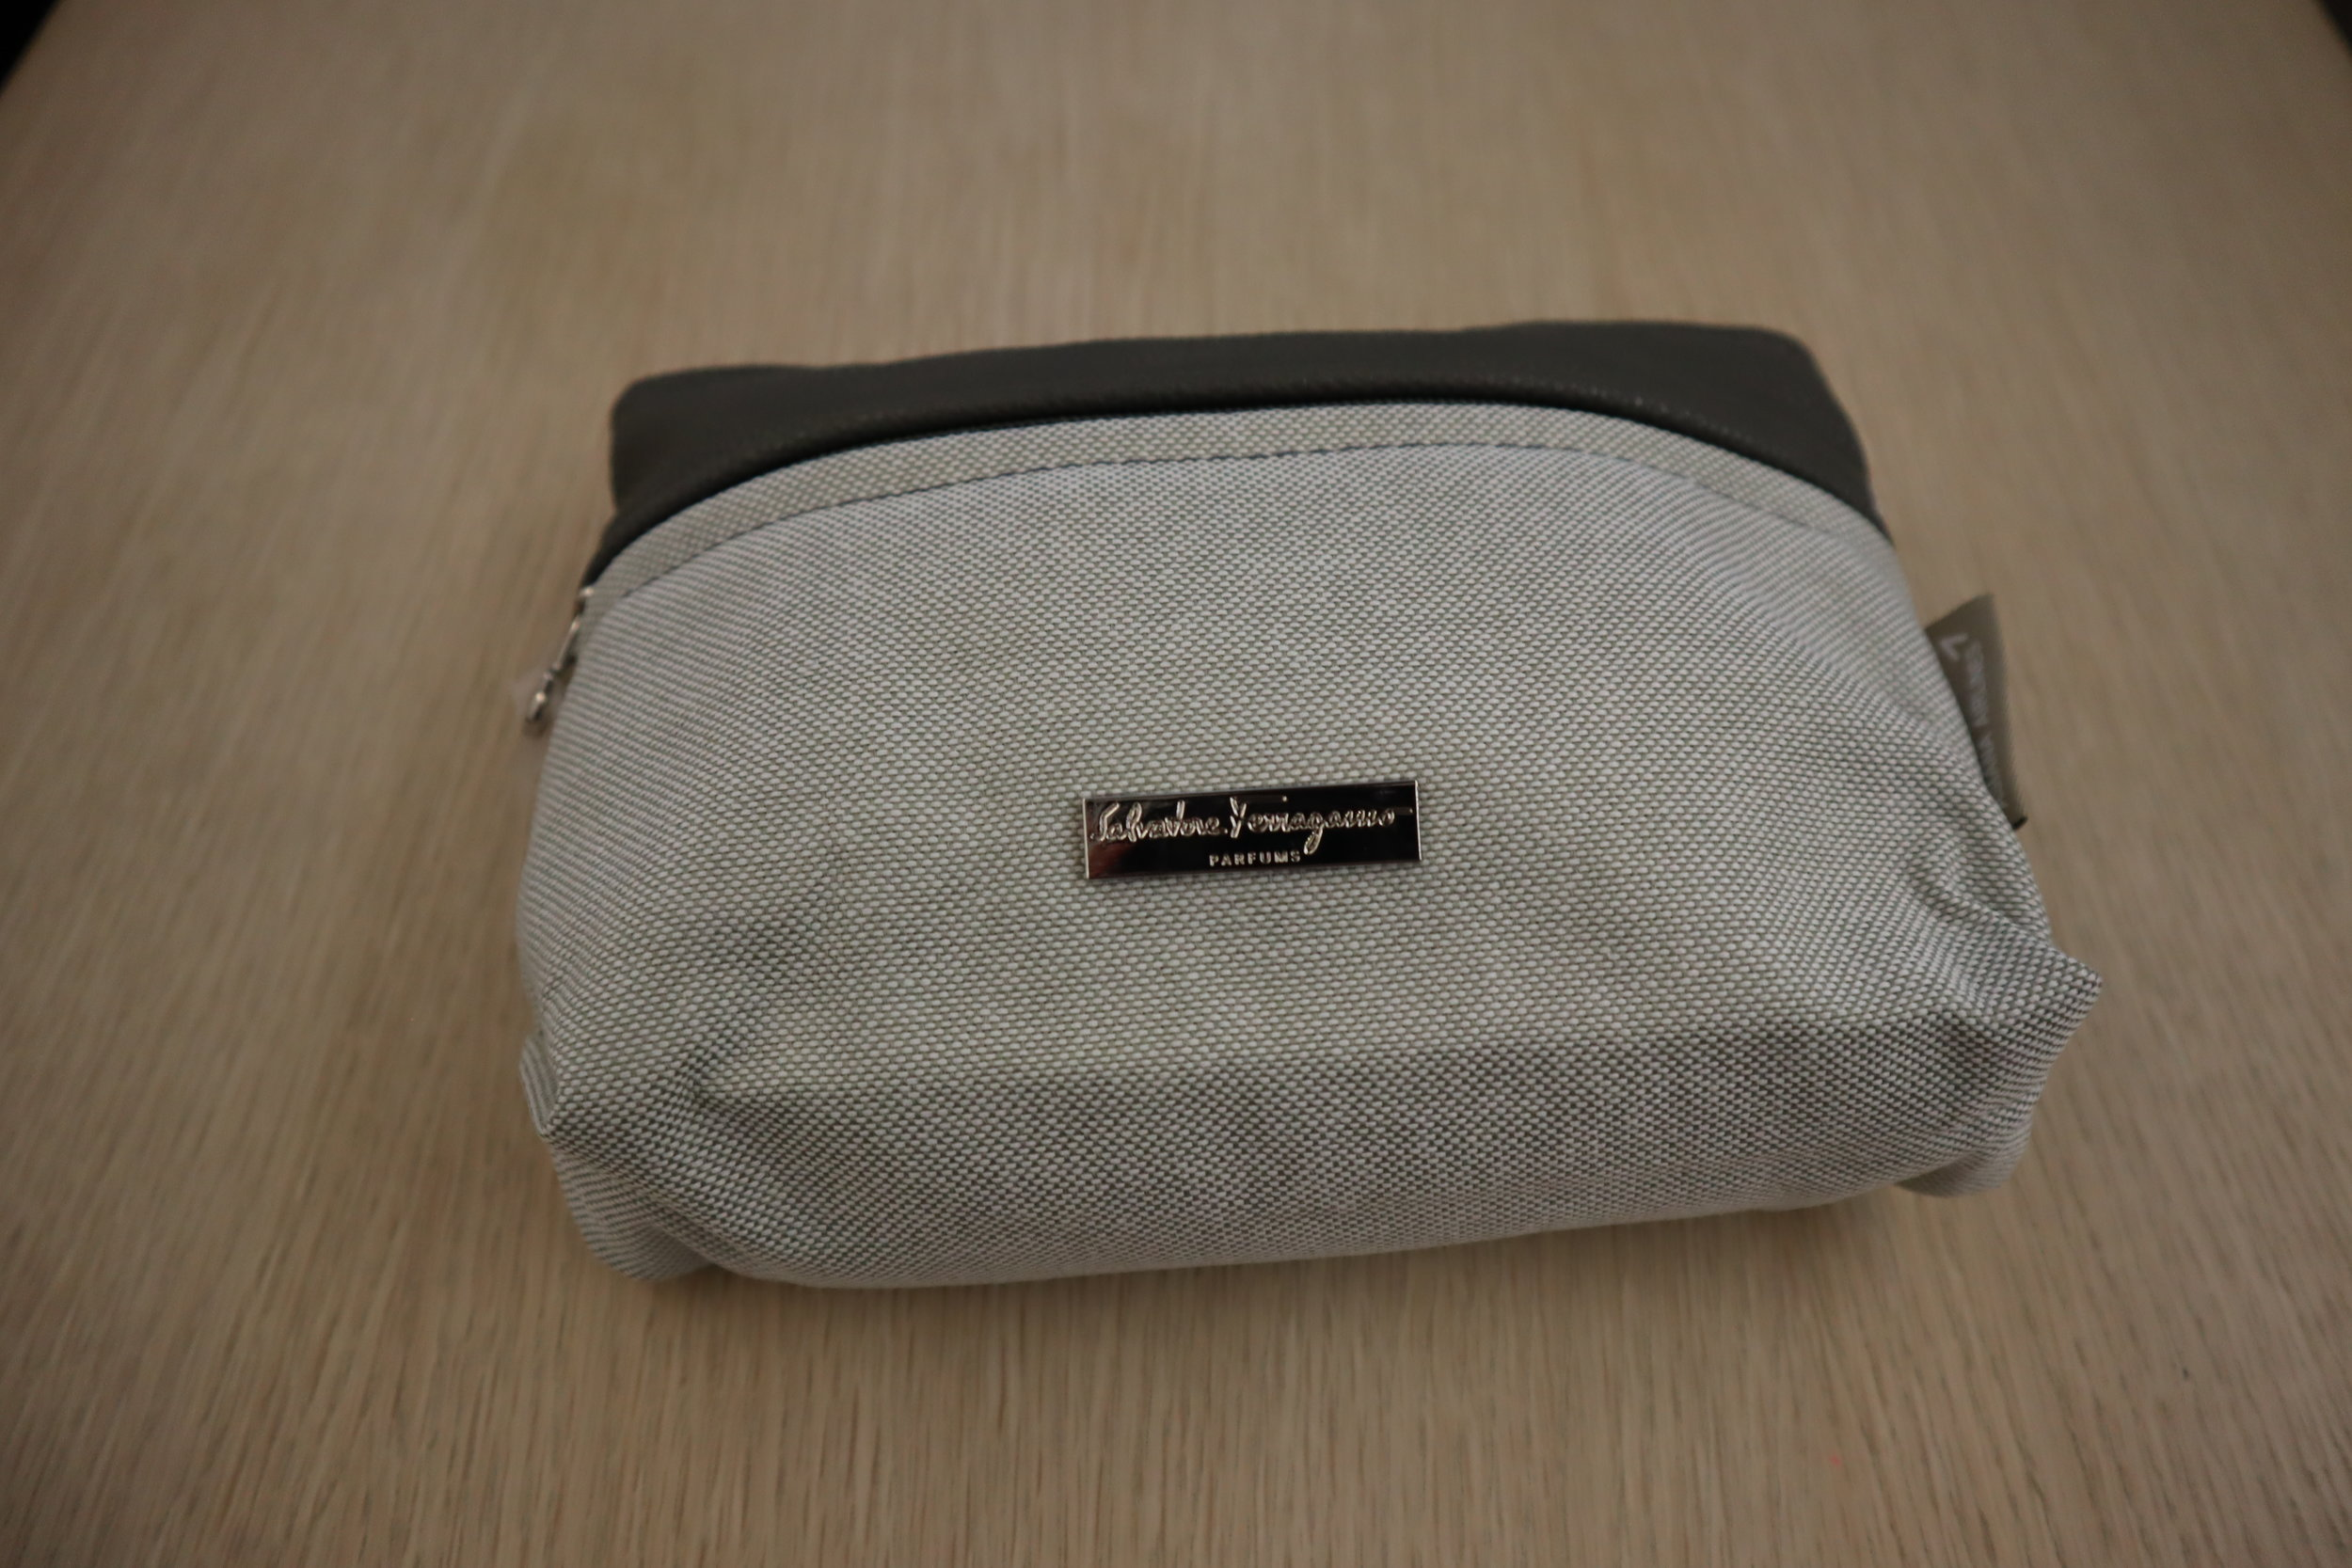 Asiana Airlines First Class – Salvatore Ferragamo amenity kit